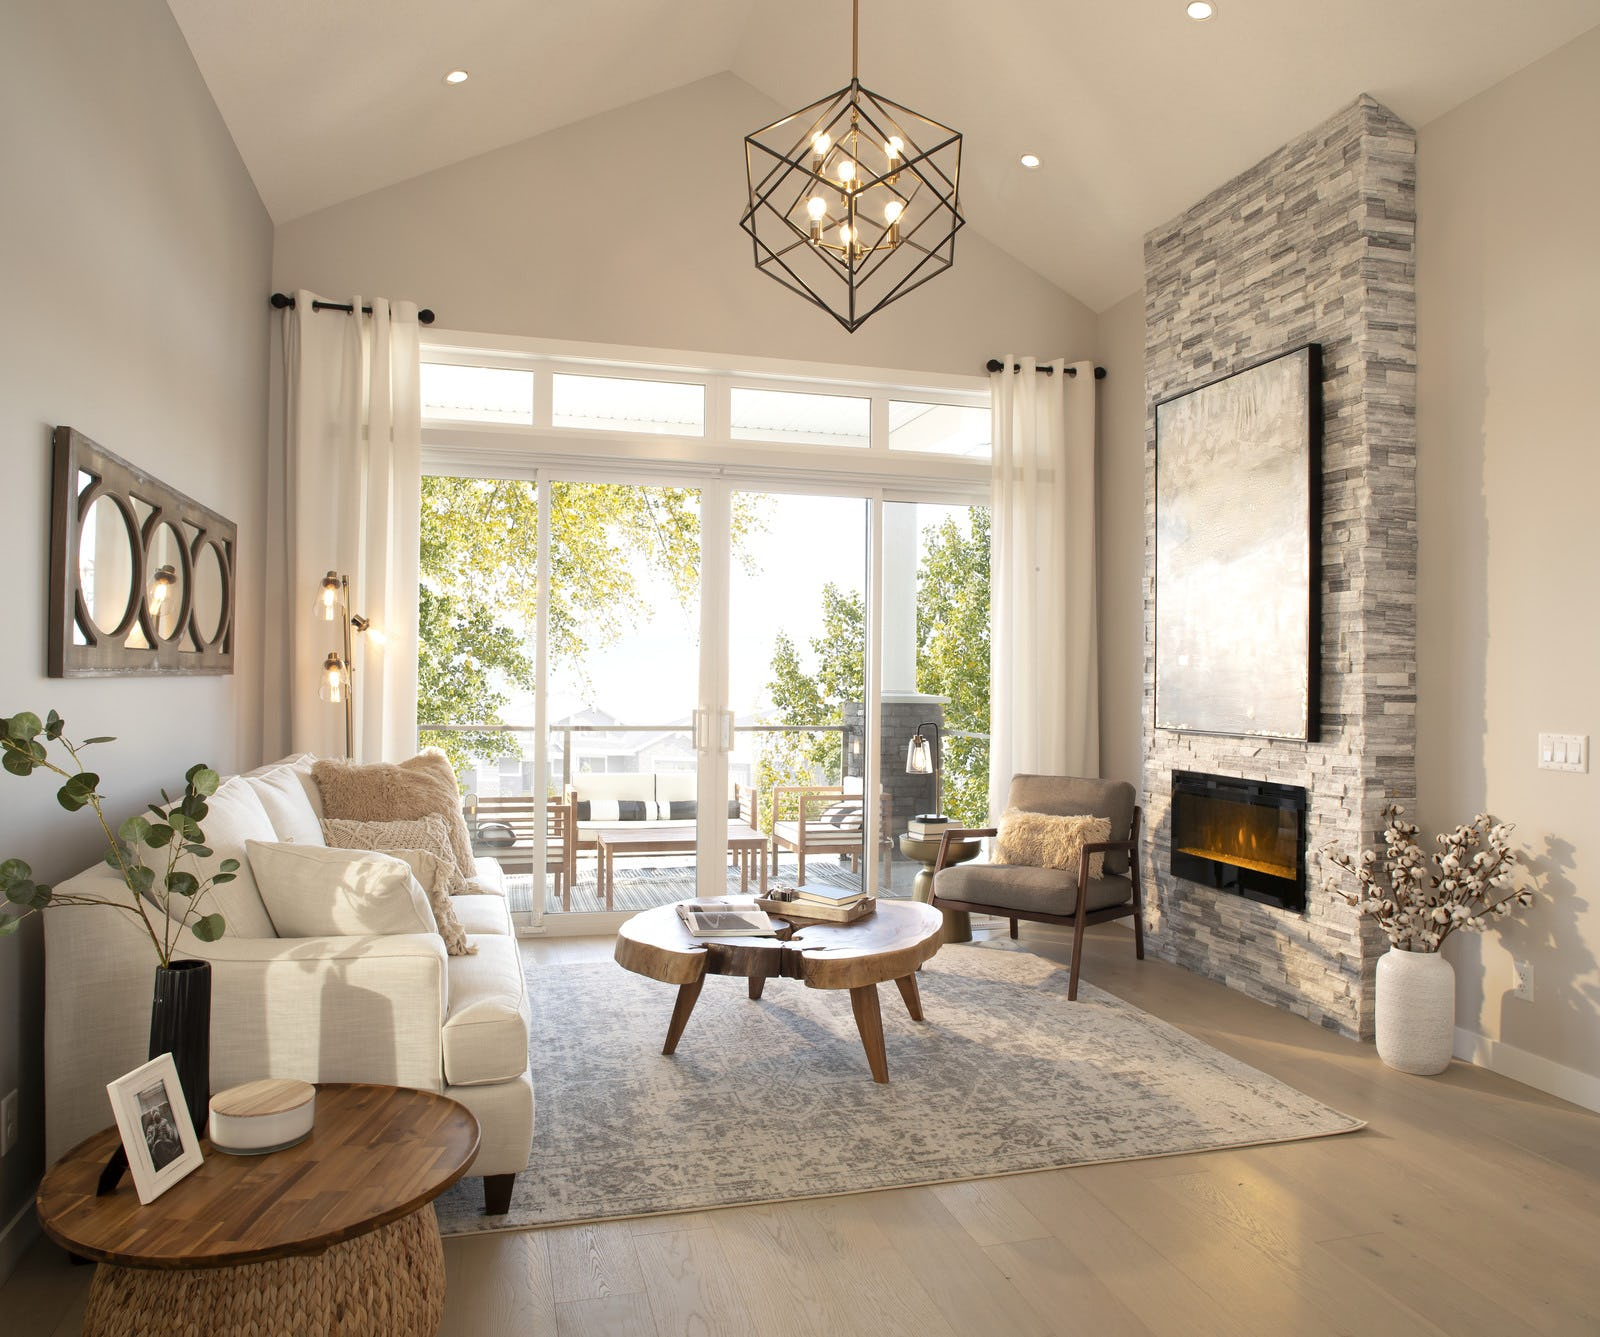 Bright living room with fireplace